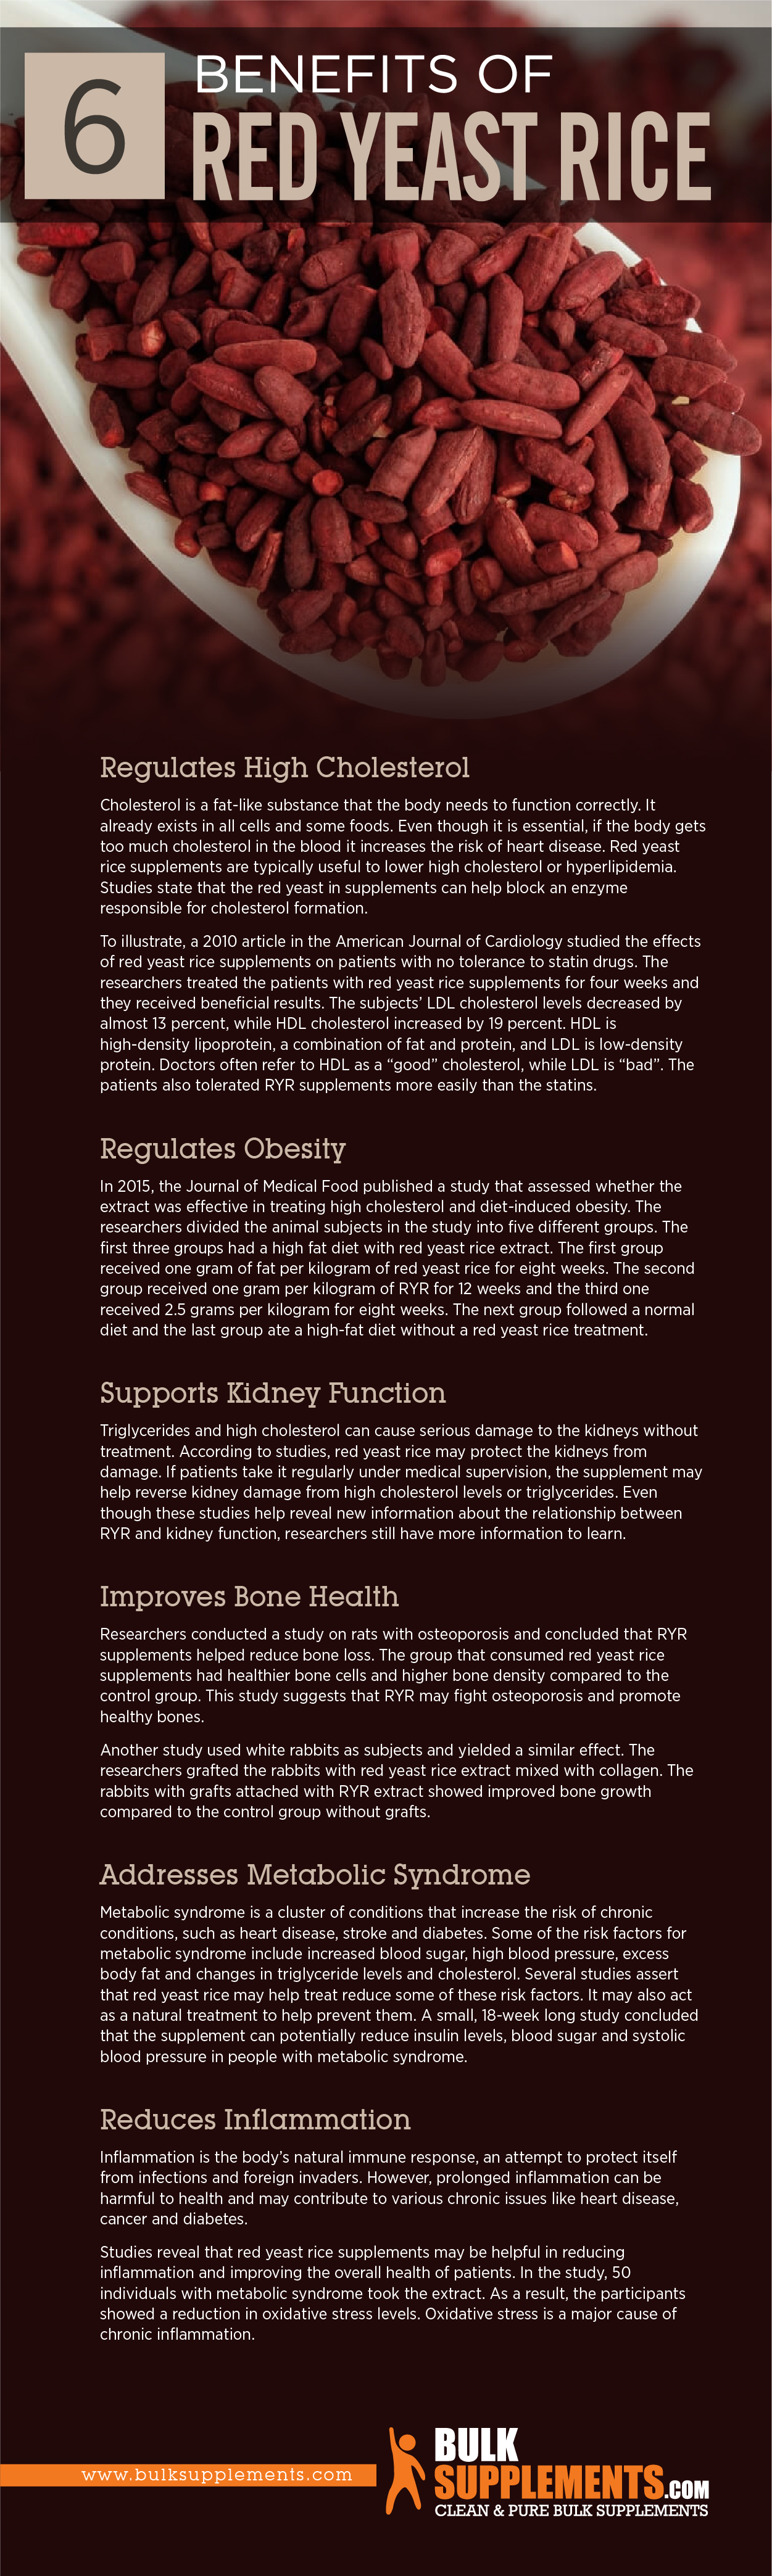 Benefits of Red Yeast Rice